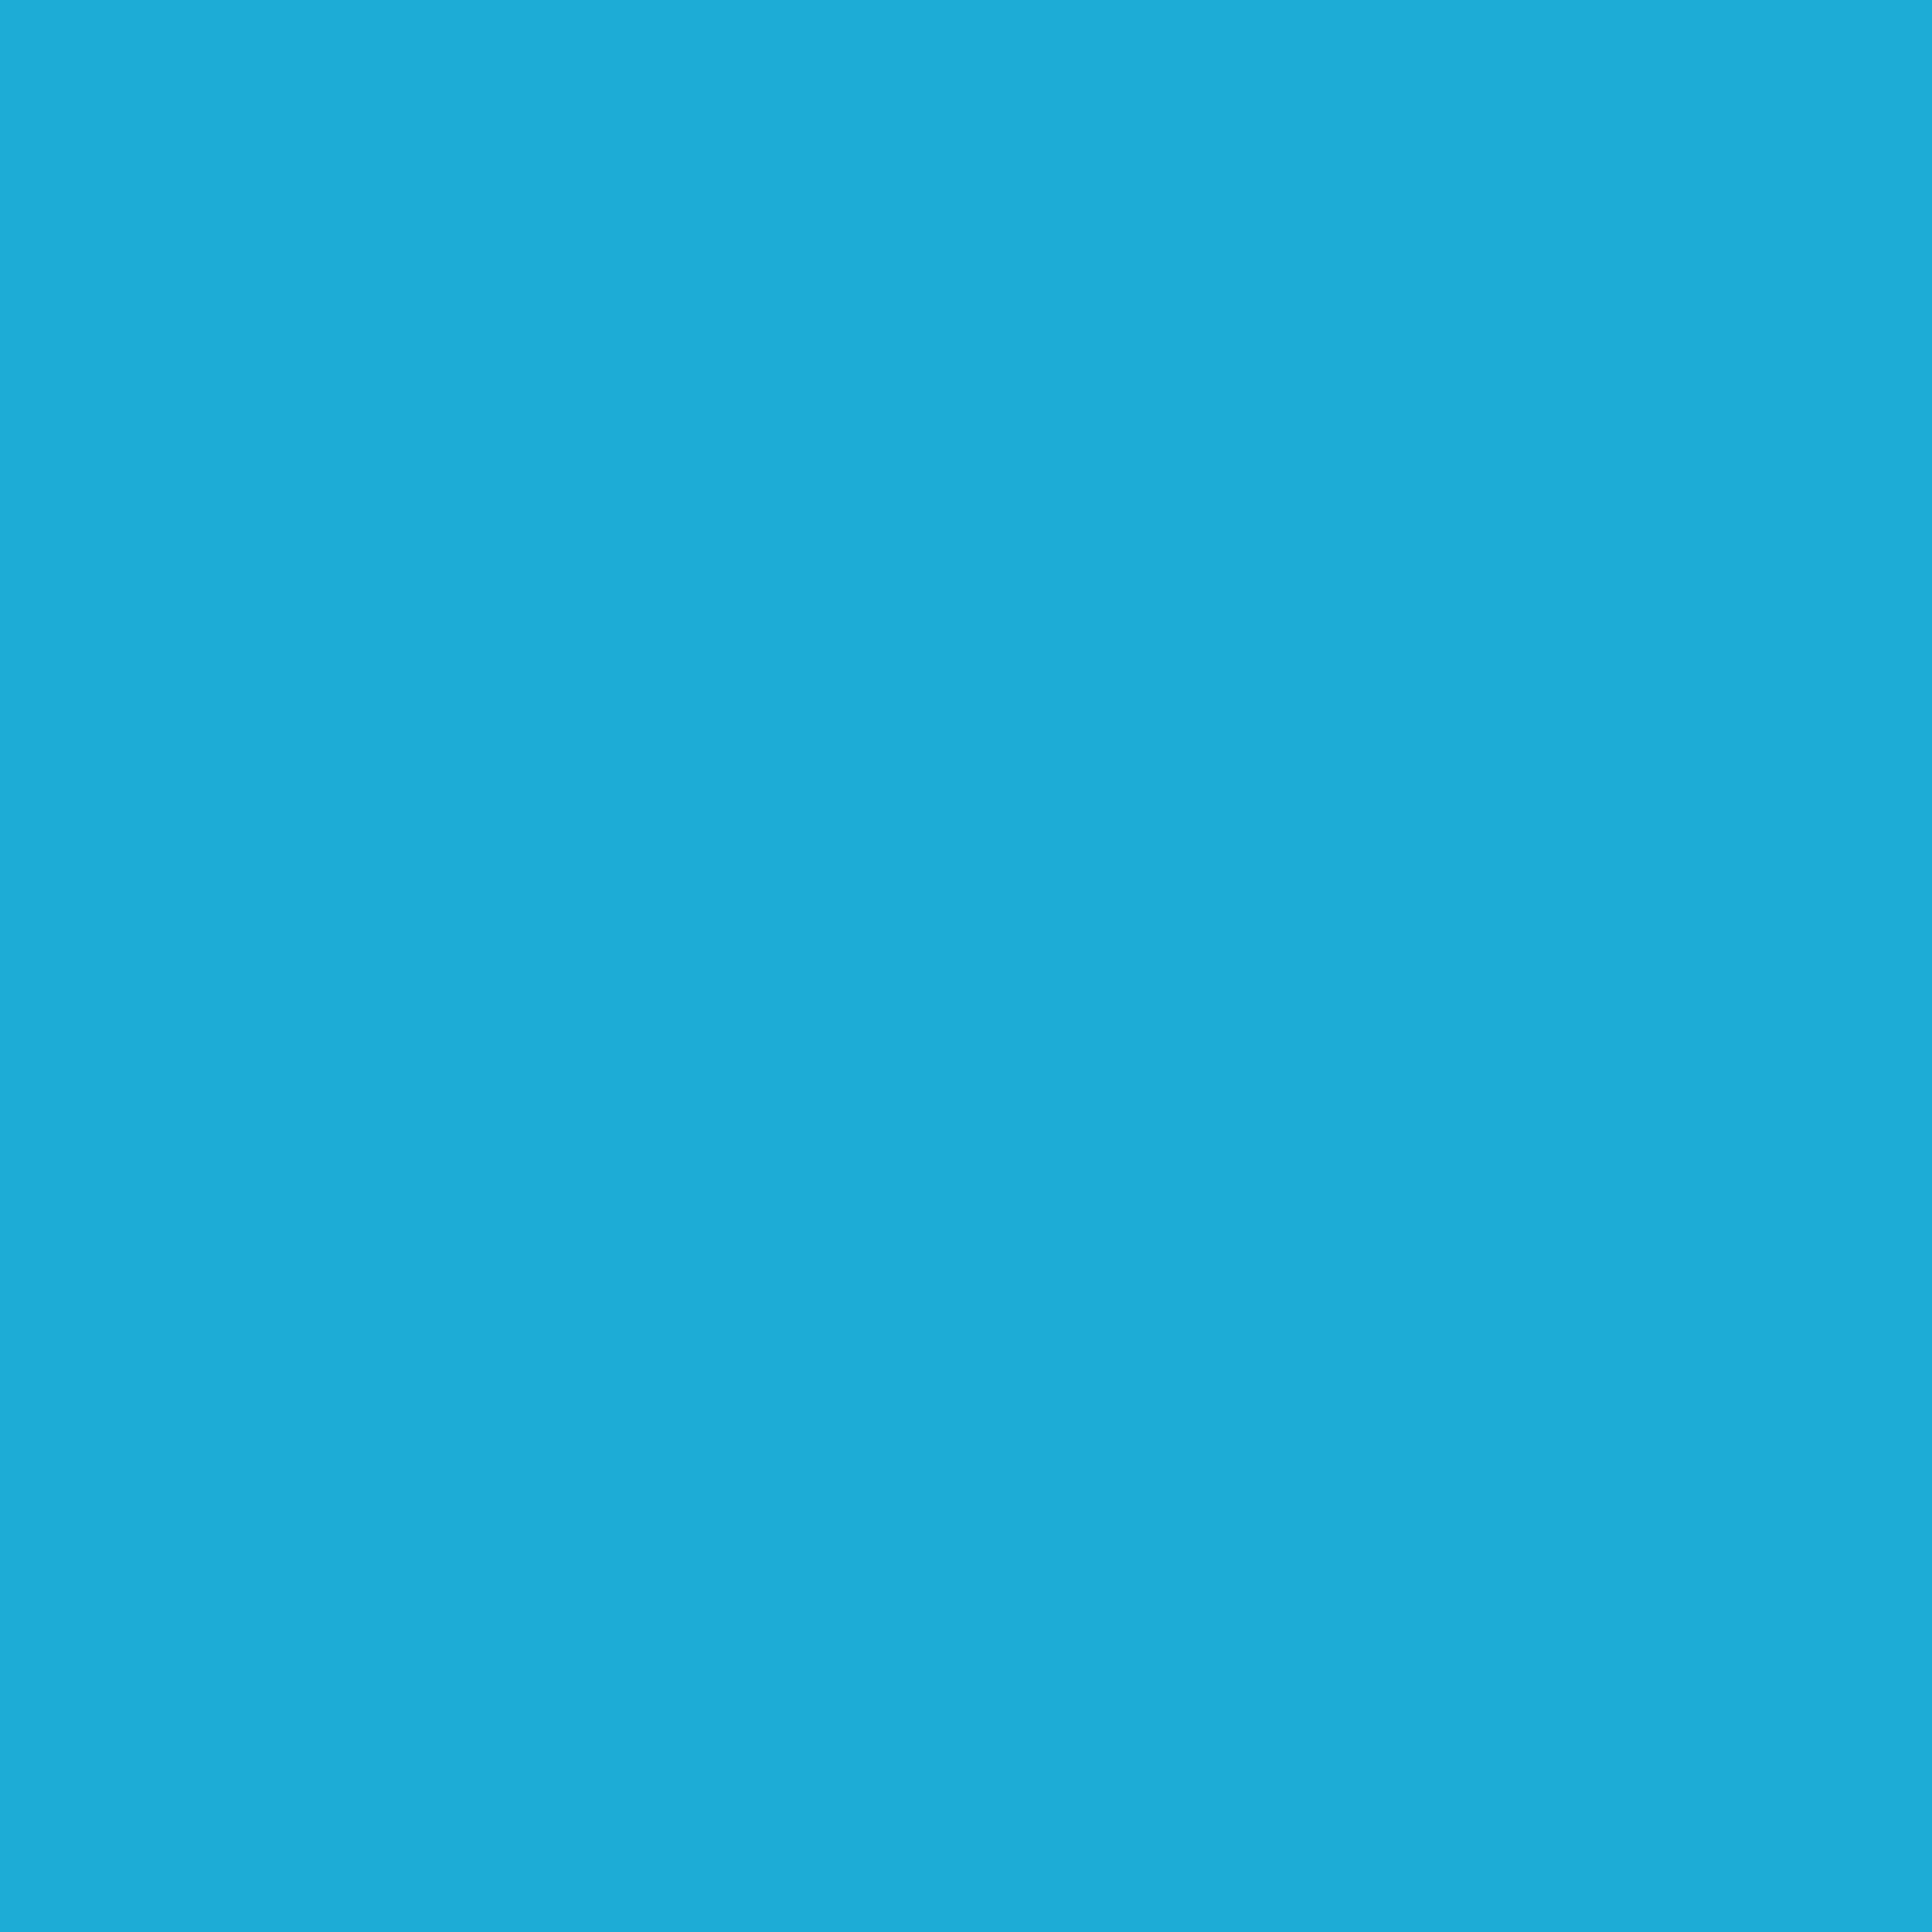 2048x2048 Bright Cerulean Solid Color Background